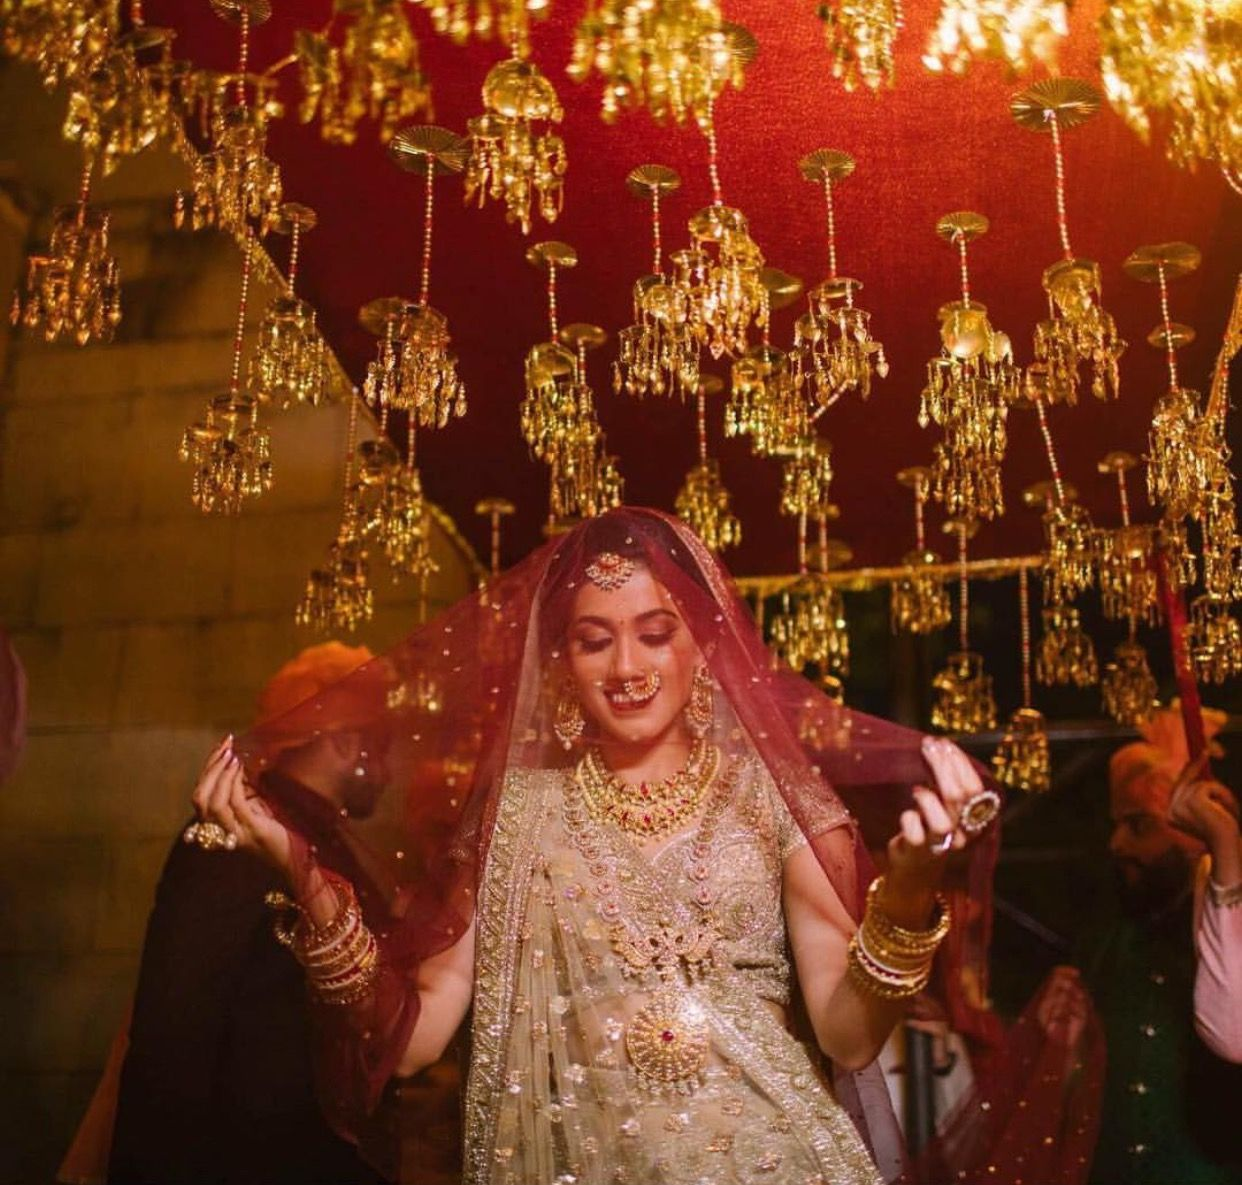 Pin By Kushboo Gujral On Wedding Dresses Bride Entry Wedding Trends Indian Wedding